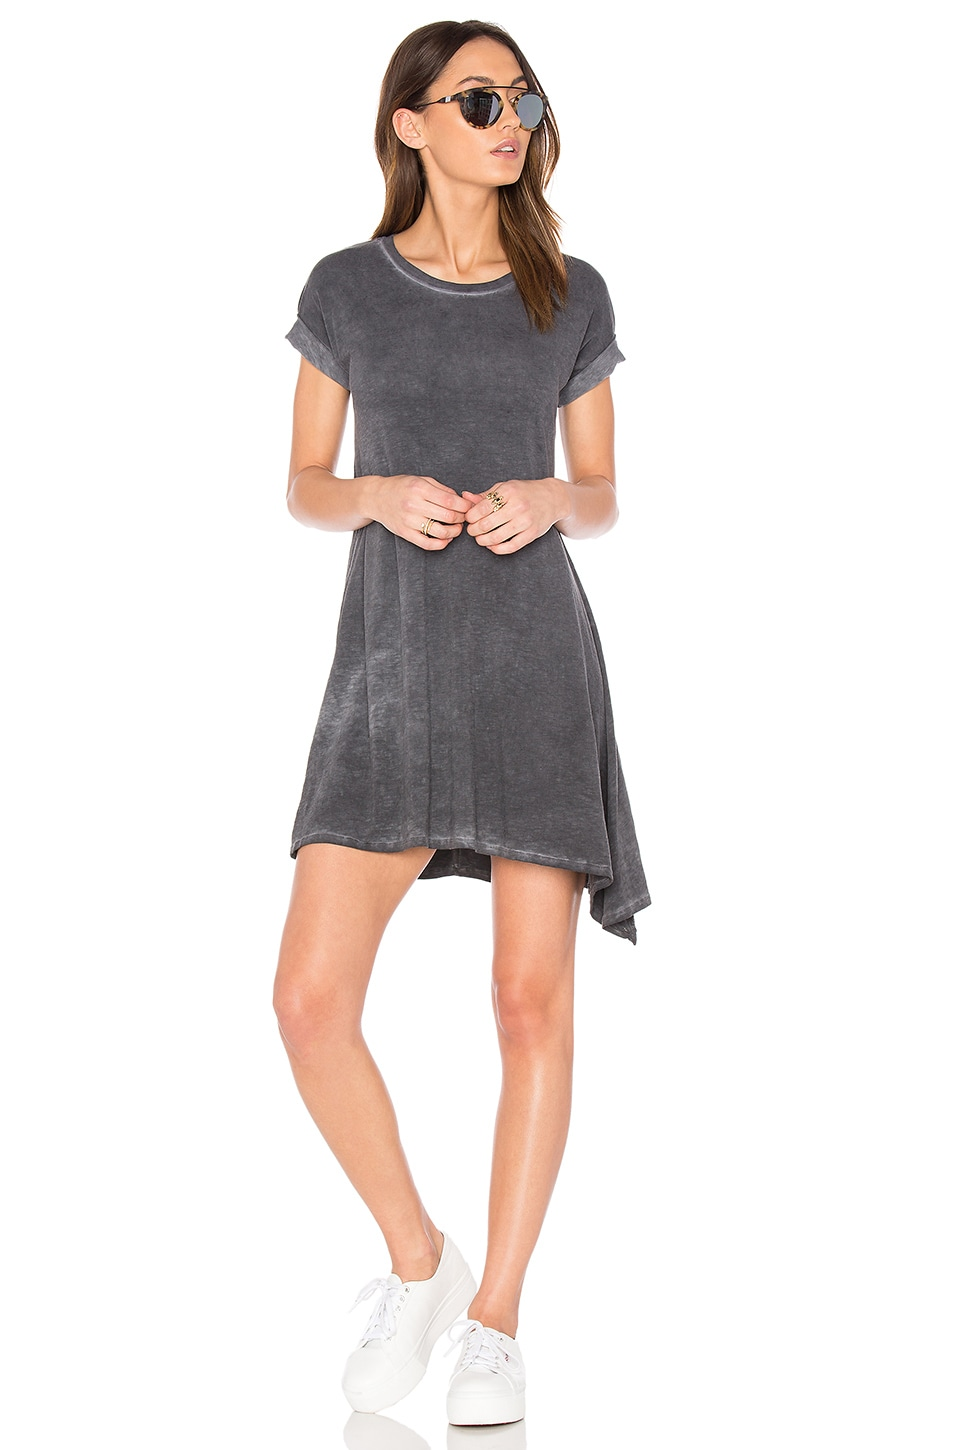 SUNDRY Asymmetrical Dress in Oil Wash Black